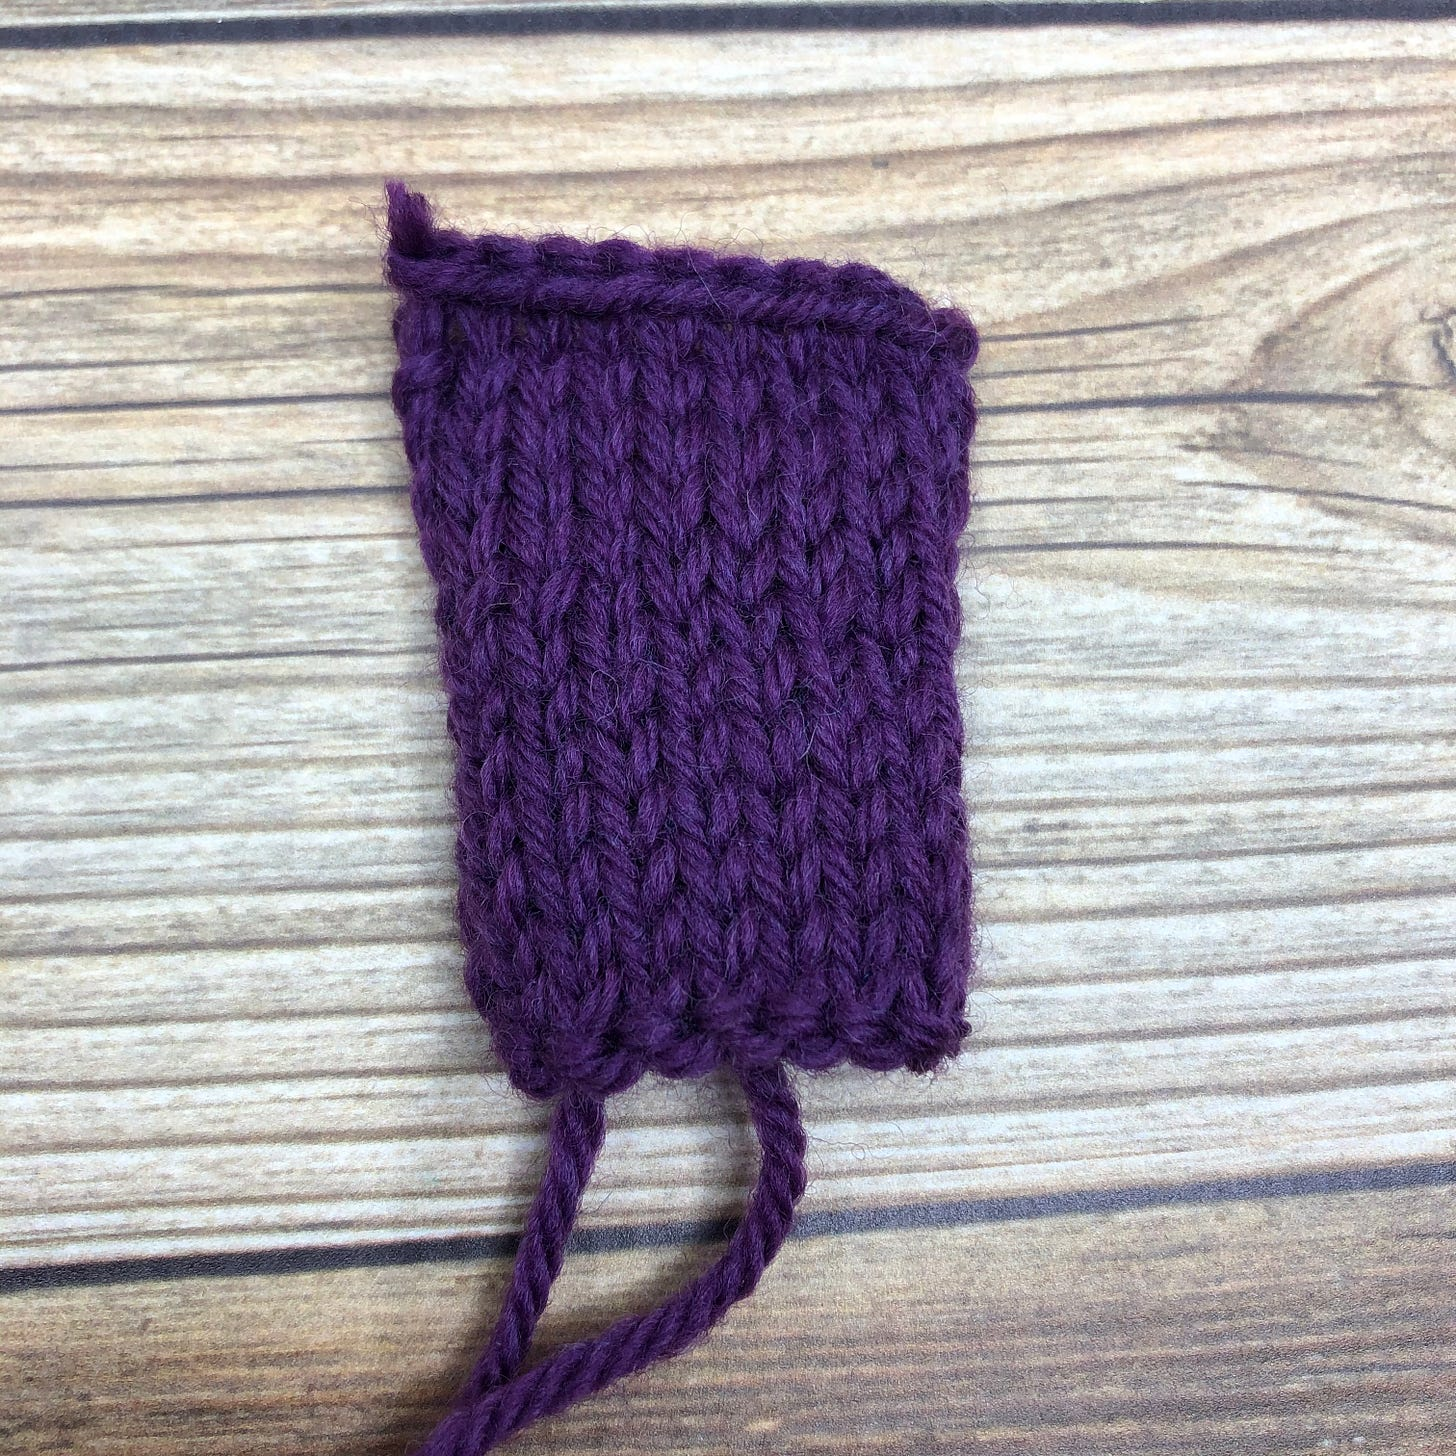 Finished swatch